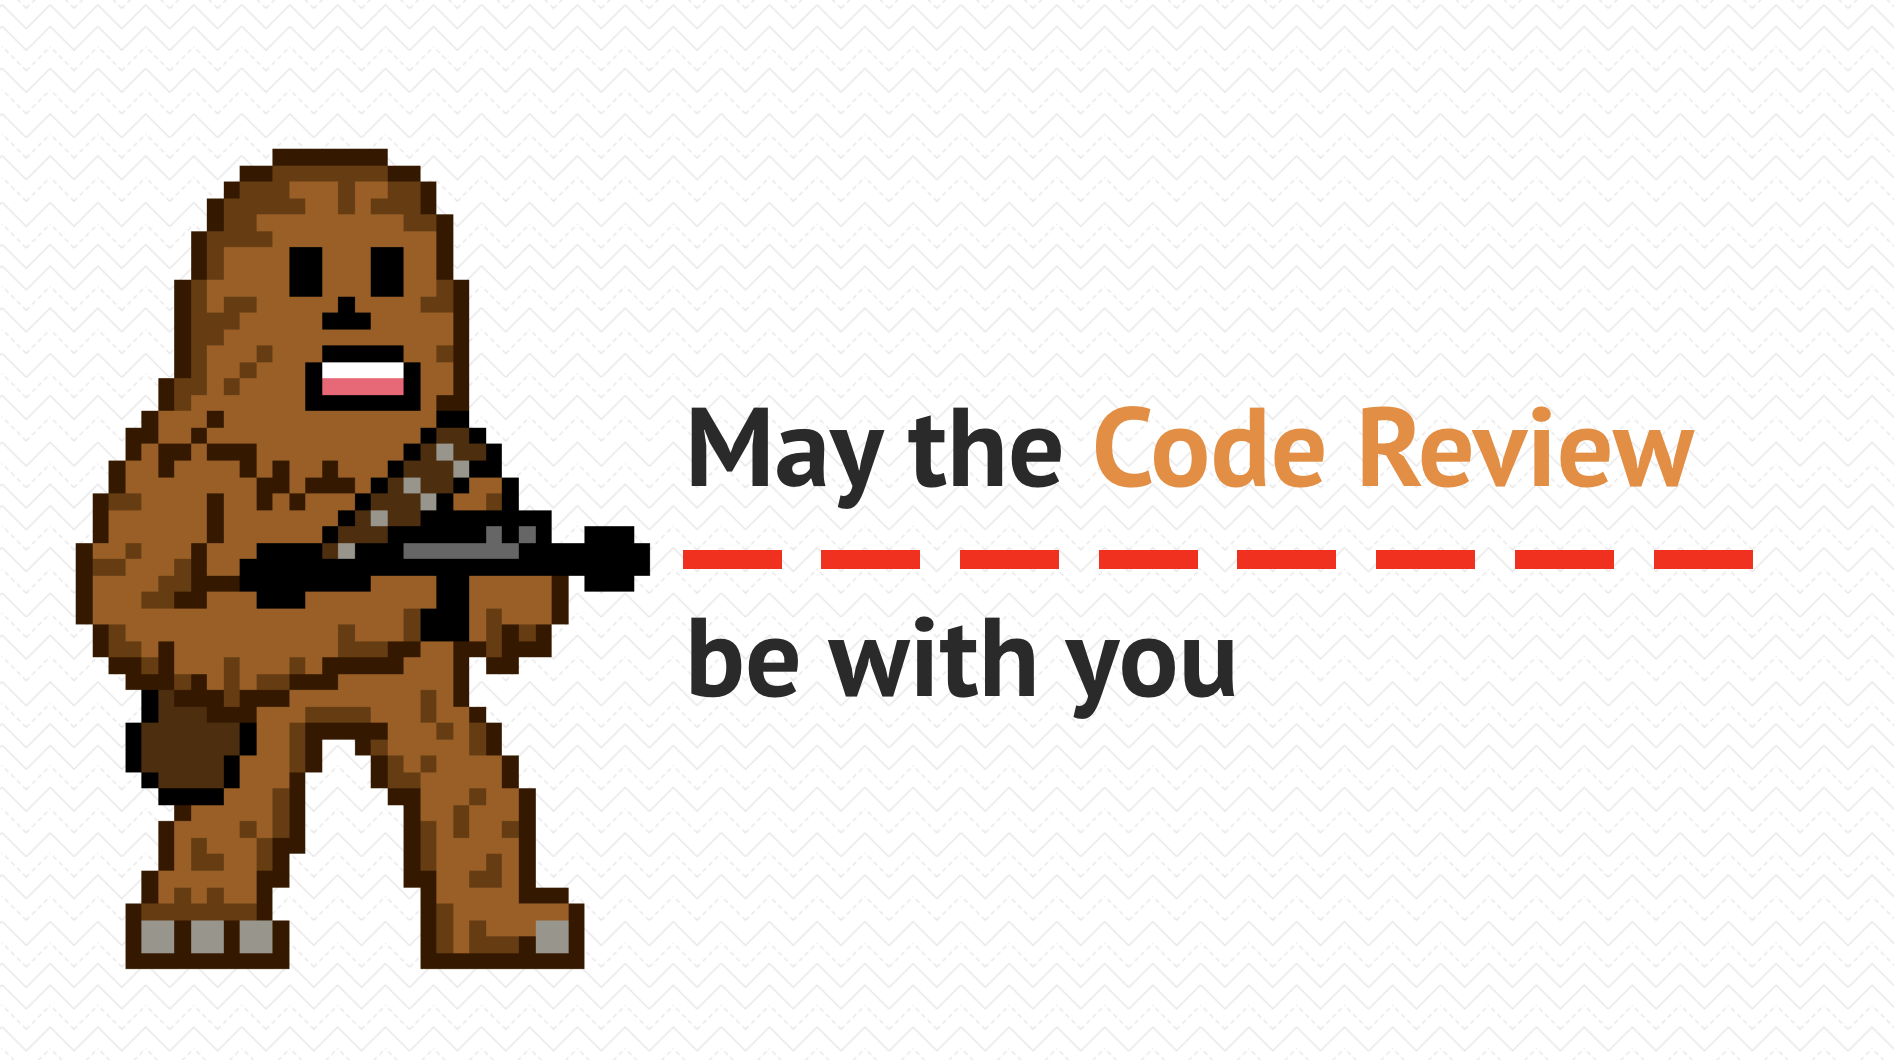 May the Code Review be with you